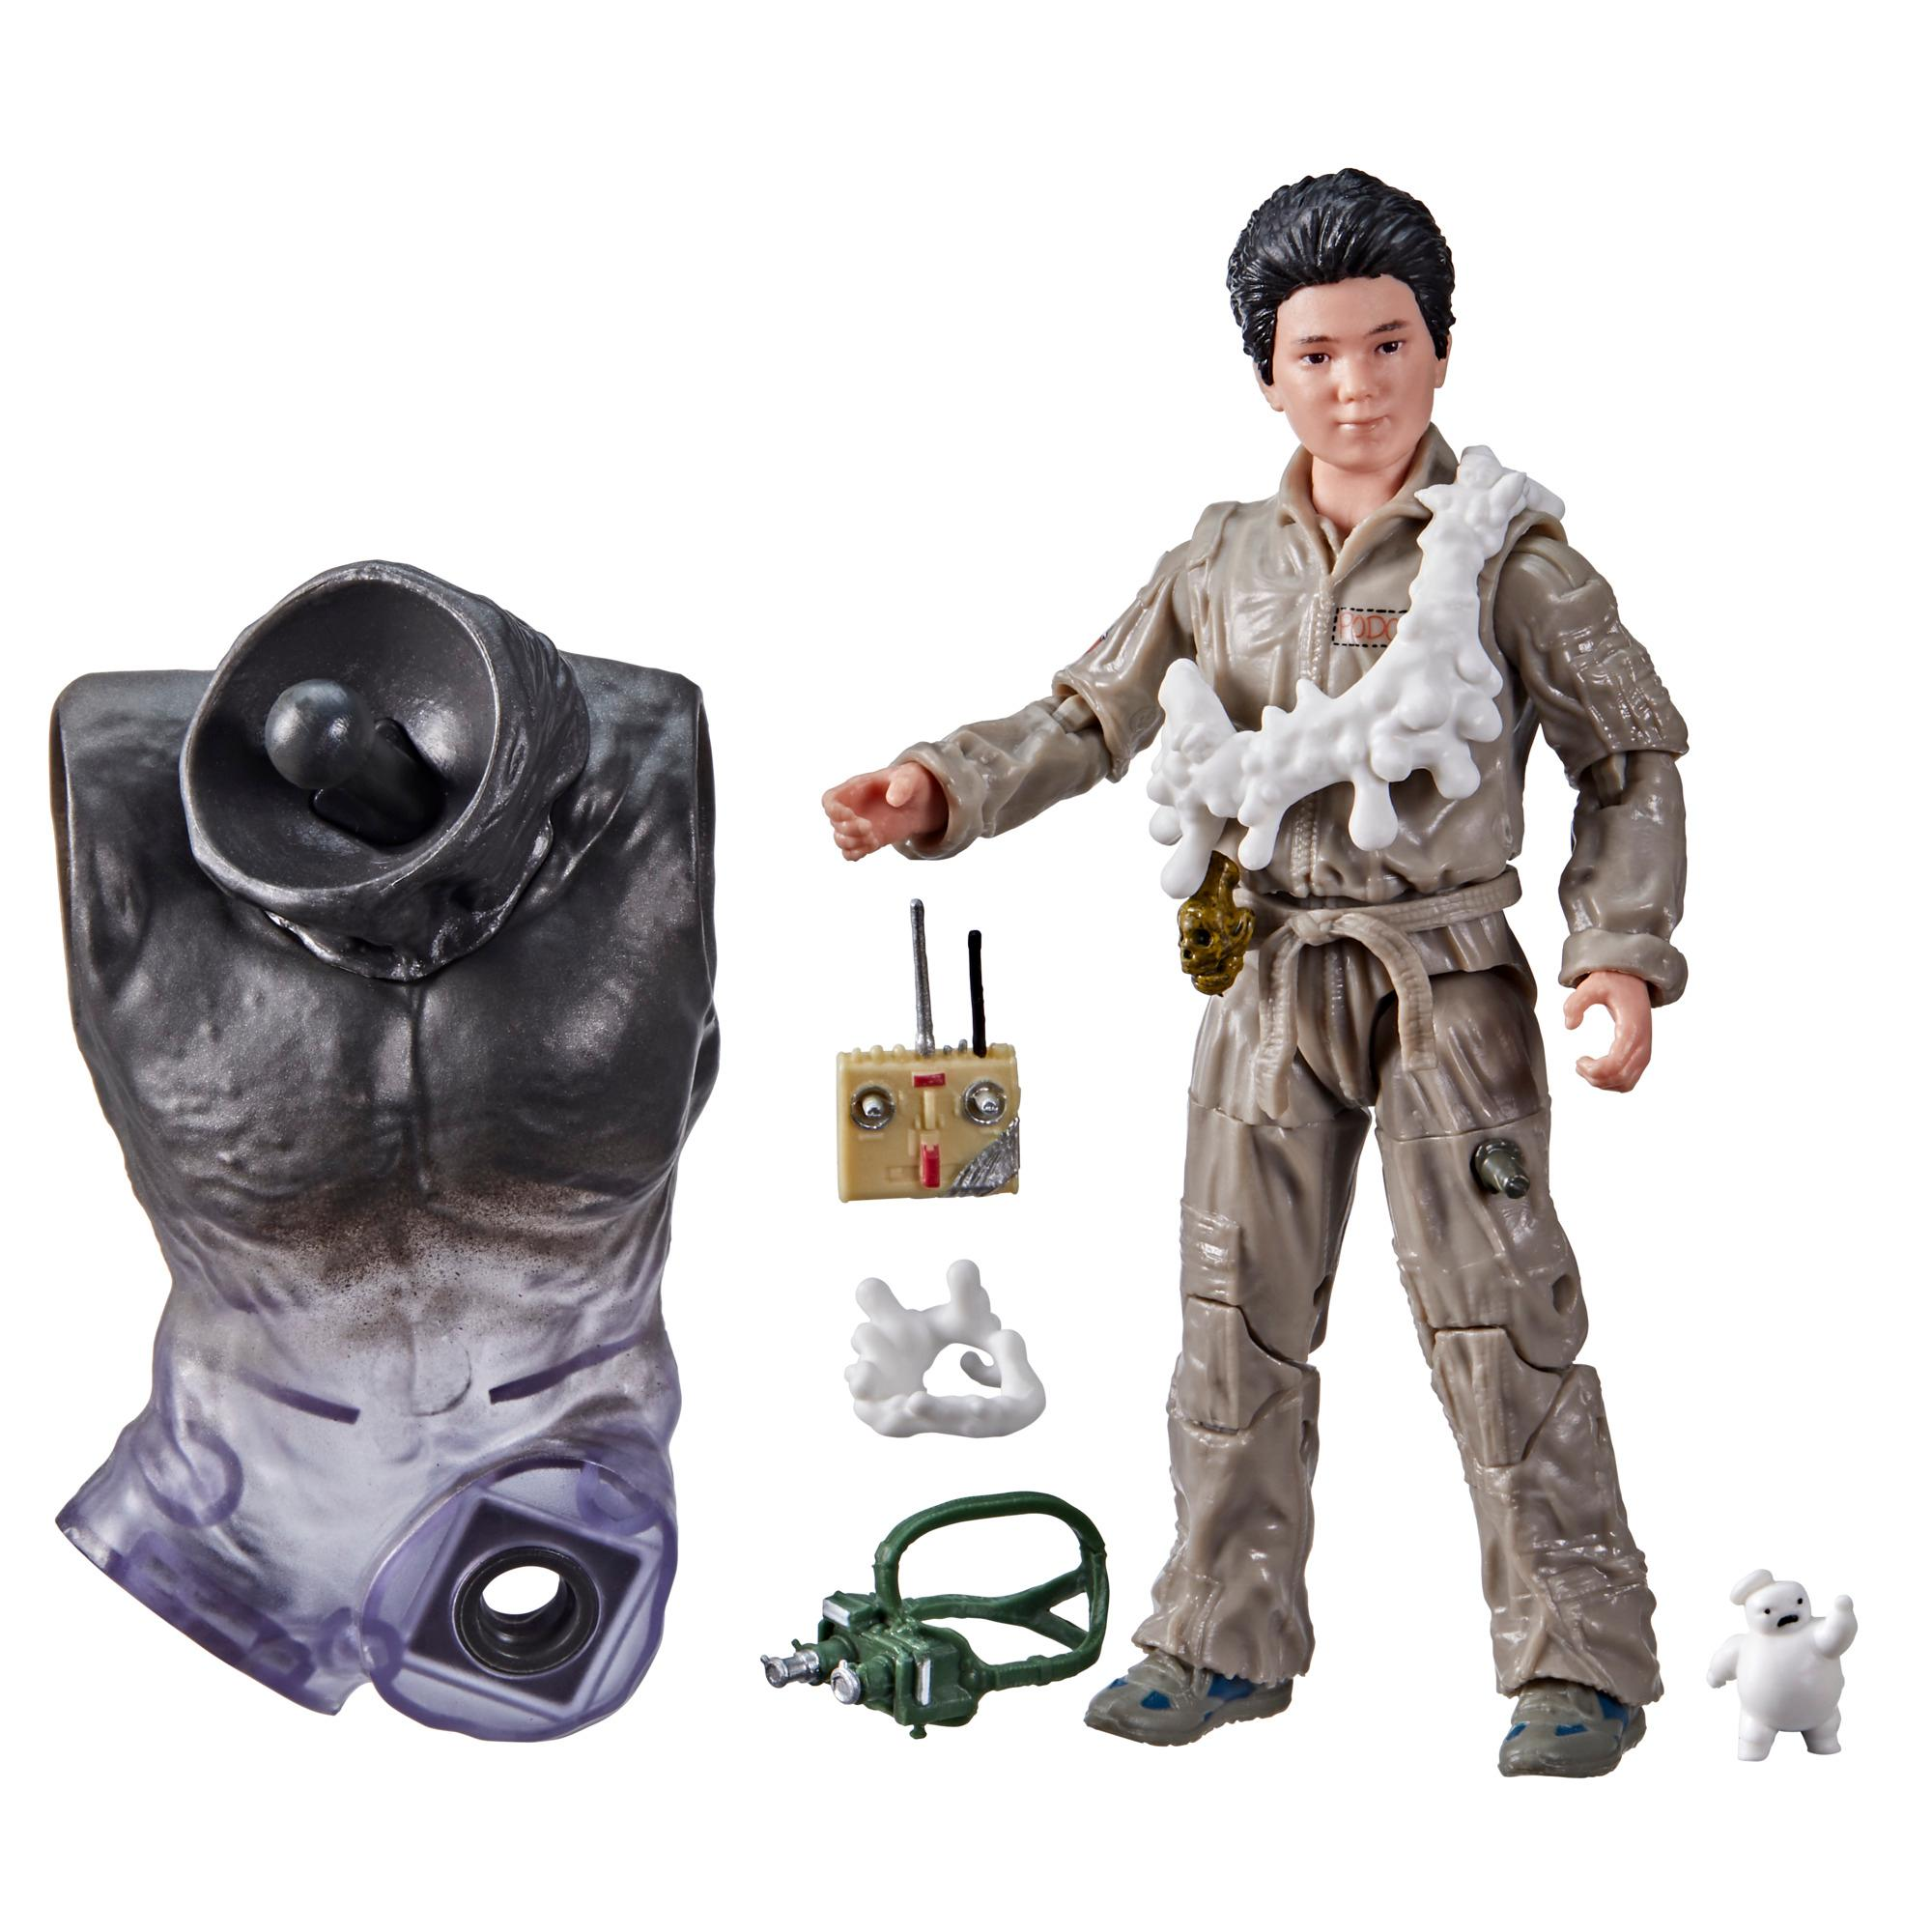 Ghostbusters Plasma Series Podcast Toy 6-Inch-Scale Collectible Ghostbusters: Afterlife Action Figure, Kids Ages 4 and Up